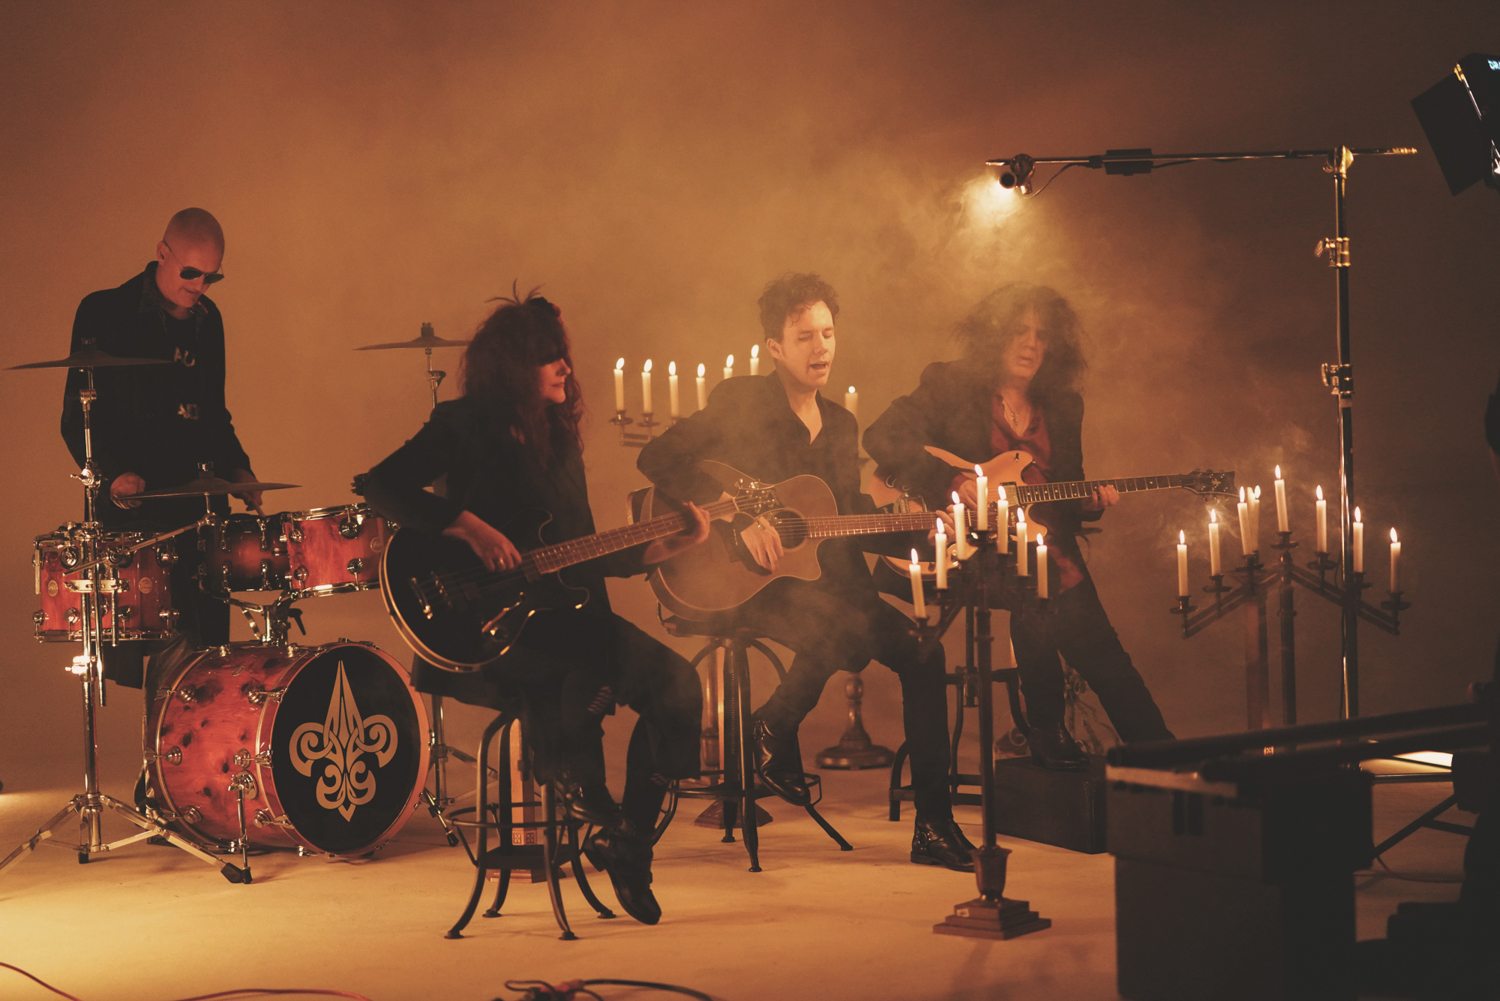 'STORM' (acoustic version) video will premiere early next week. Details soon!